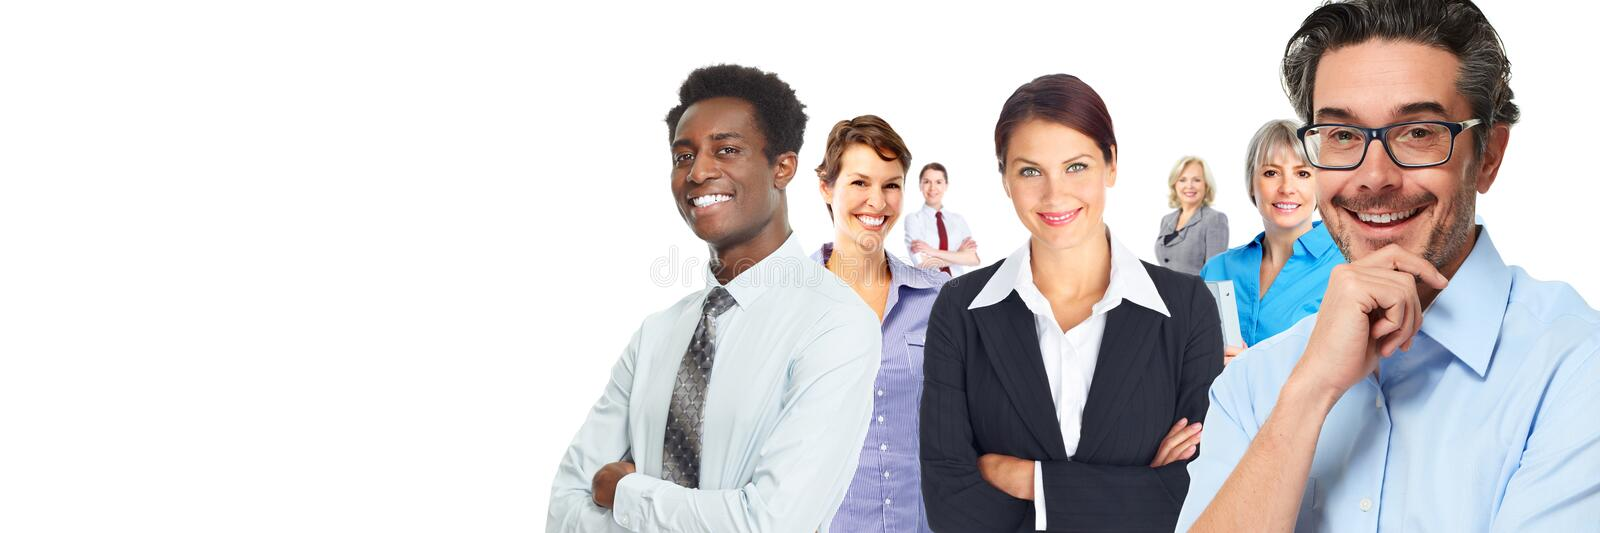 Business people group. stock photo